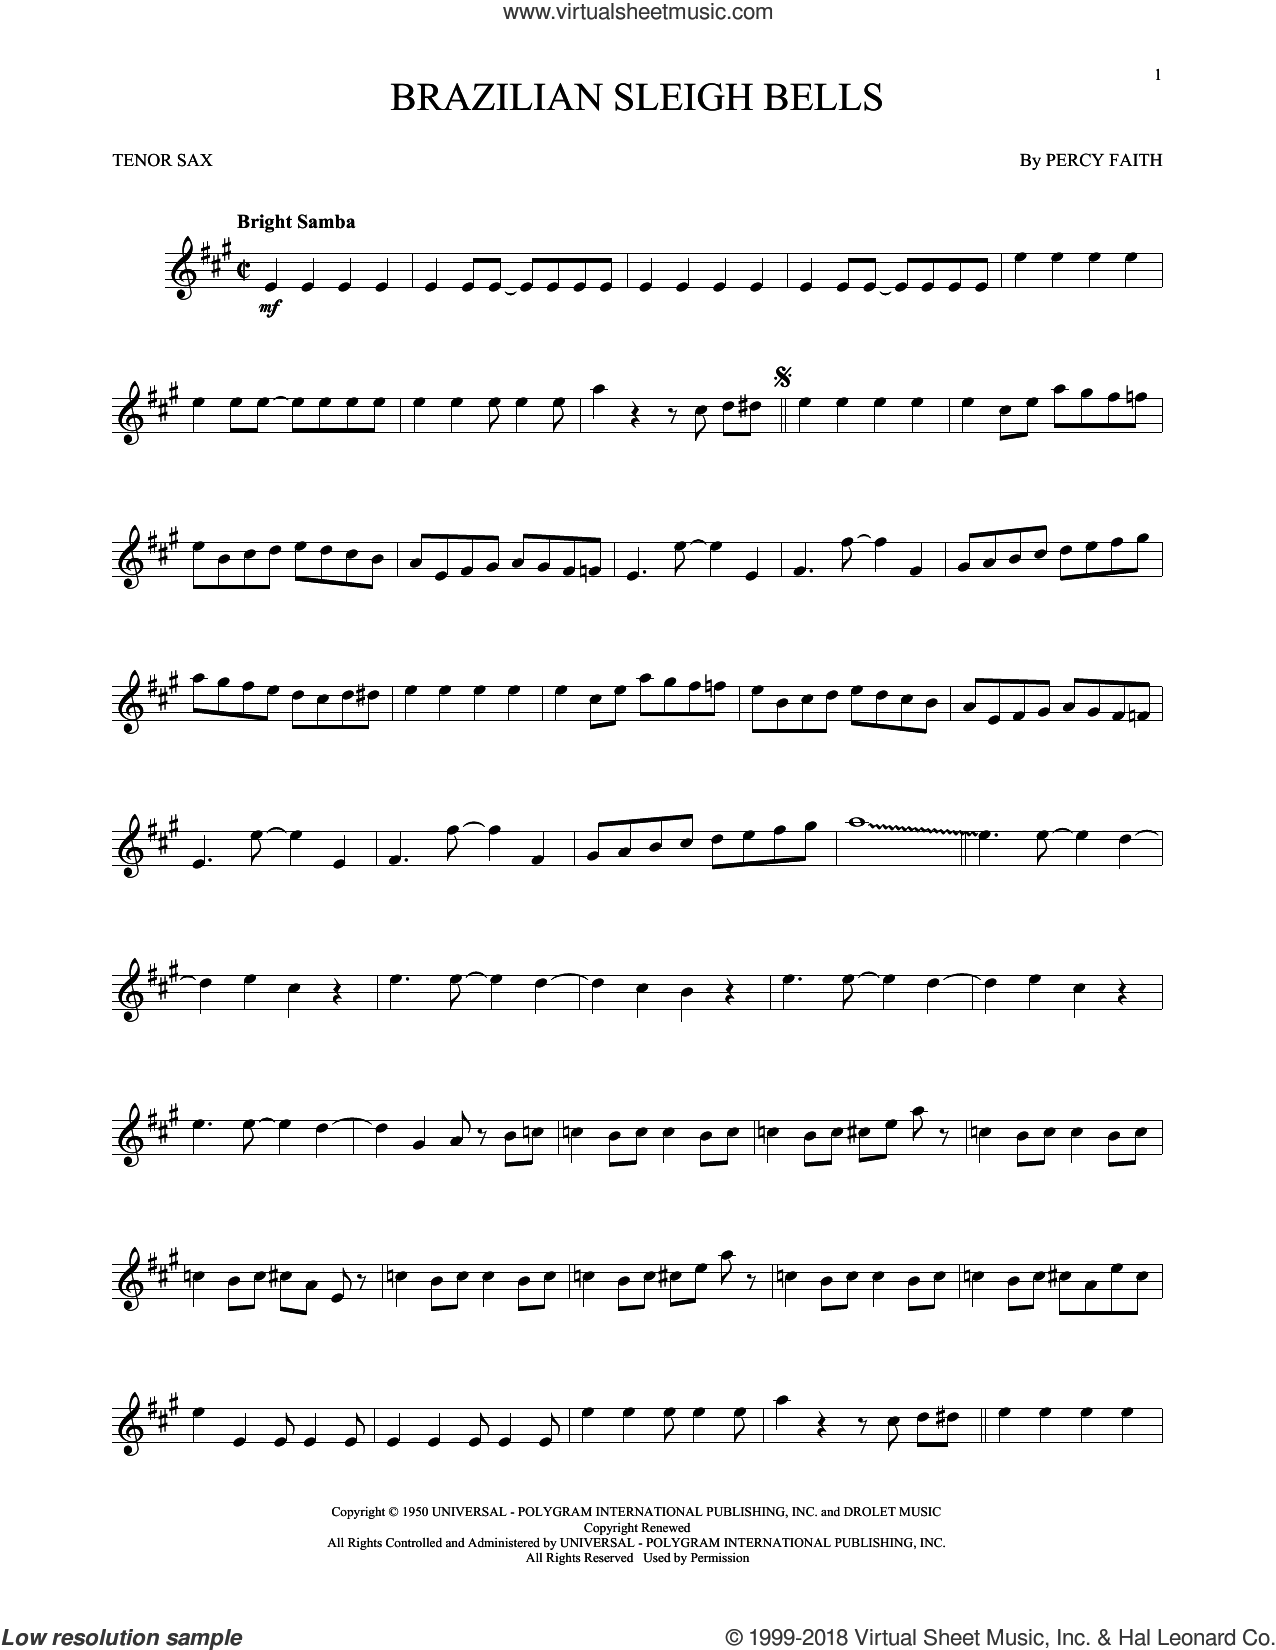 Brazilian Sleigh Bells sheet music for tenor saxophone solo by Percy Faith, intermediate skill level